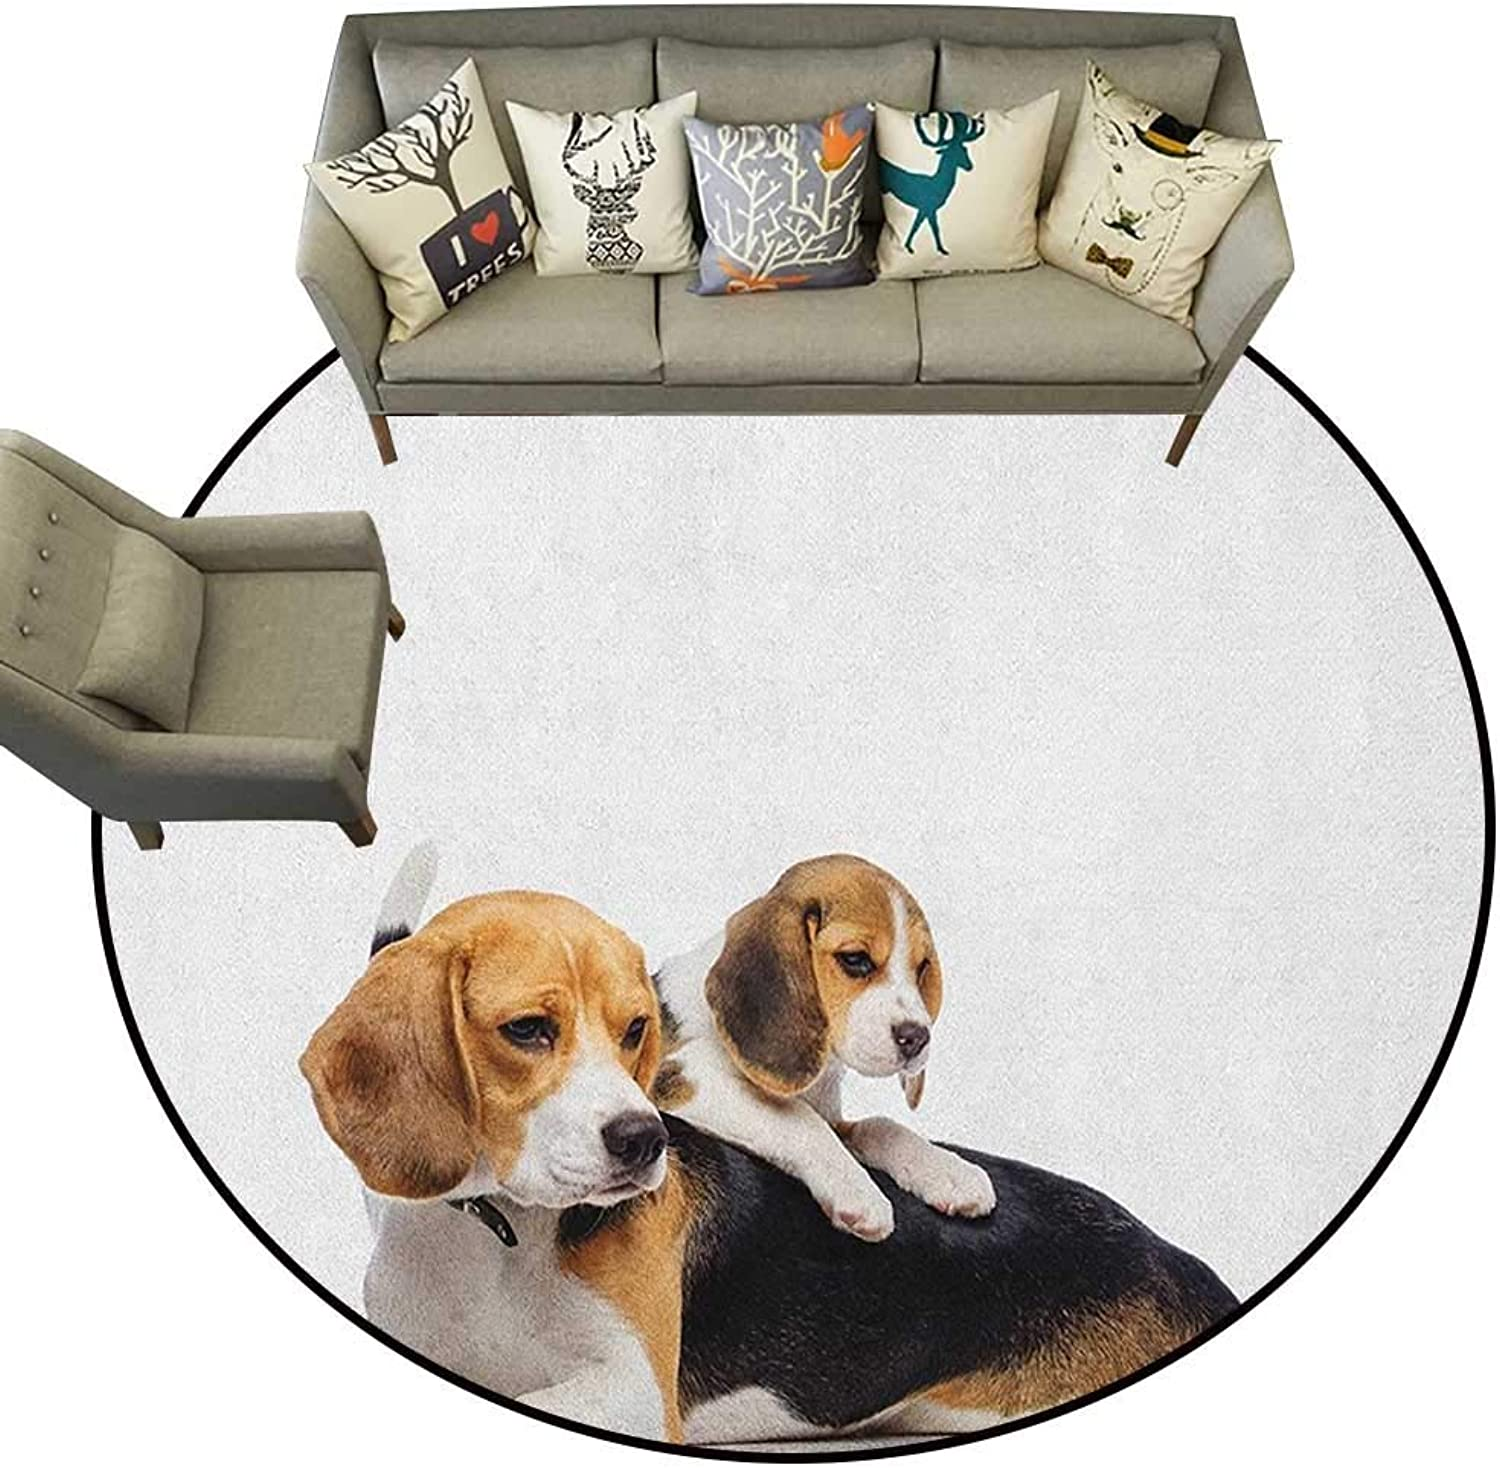 Beagle,Personalized Floor mats Cute Family with Mother and Baby Puppy Domestic Fur Animal Photography D48 Floor Mat Entrance Doormat